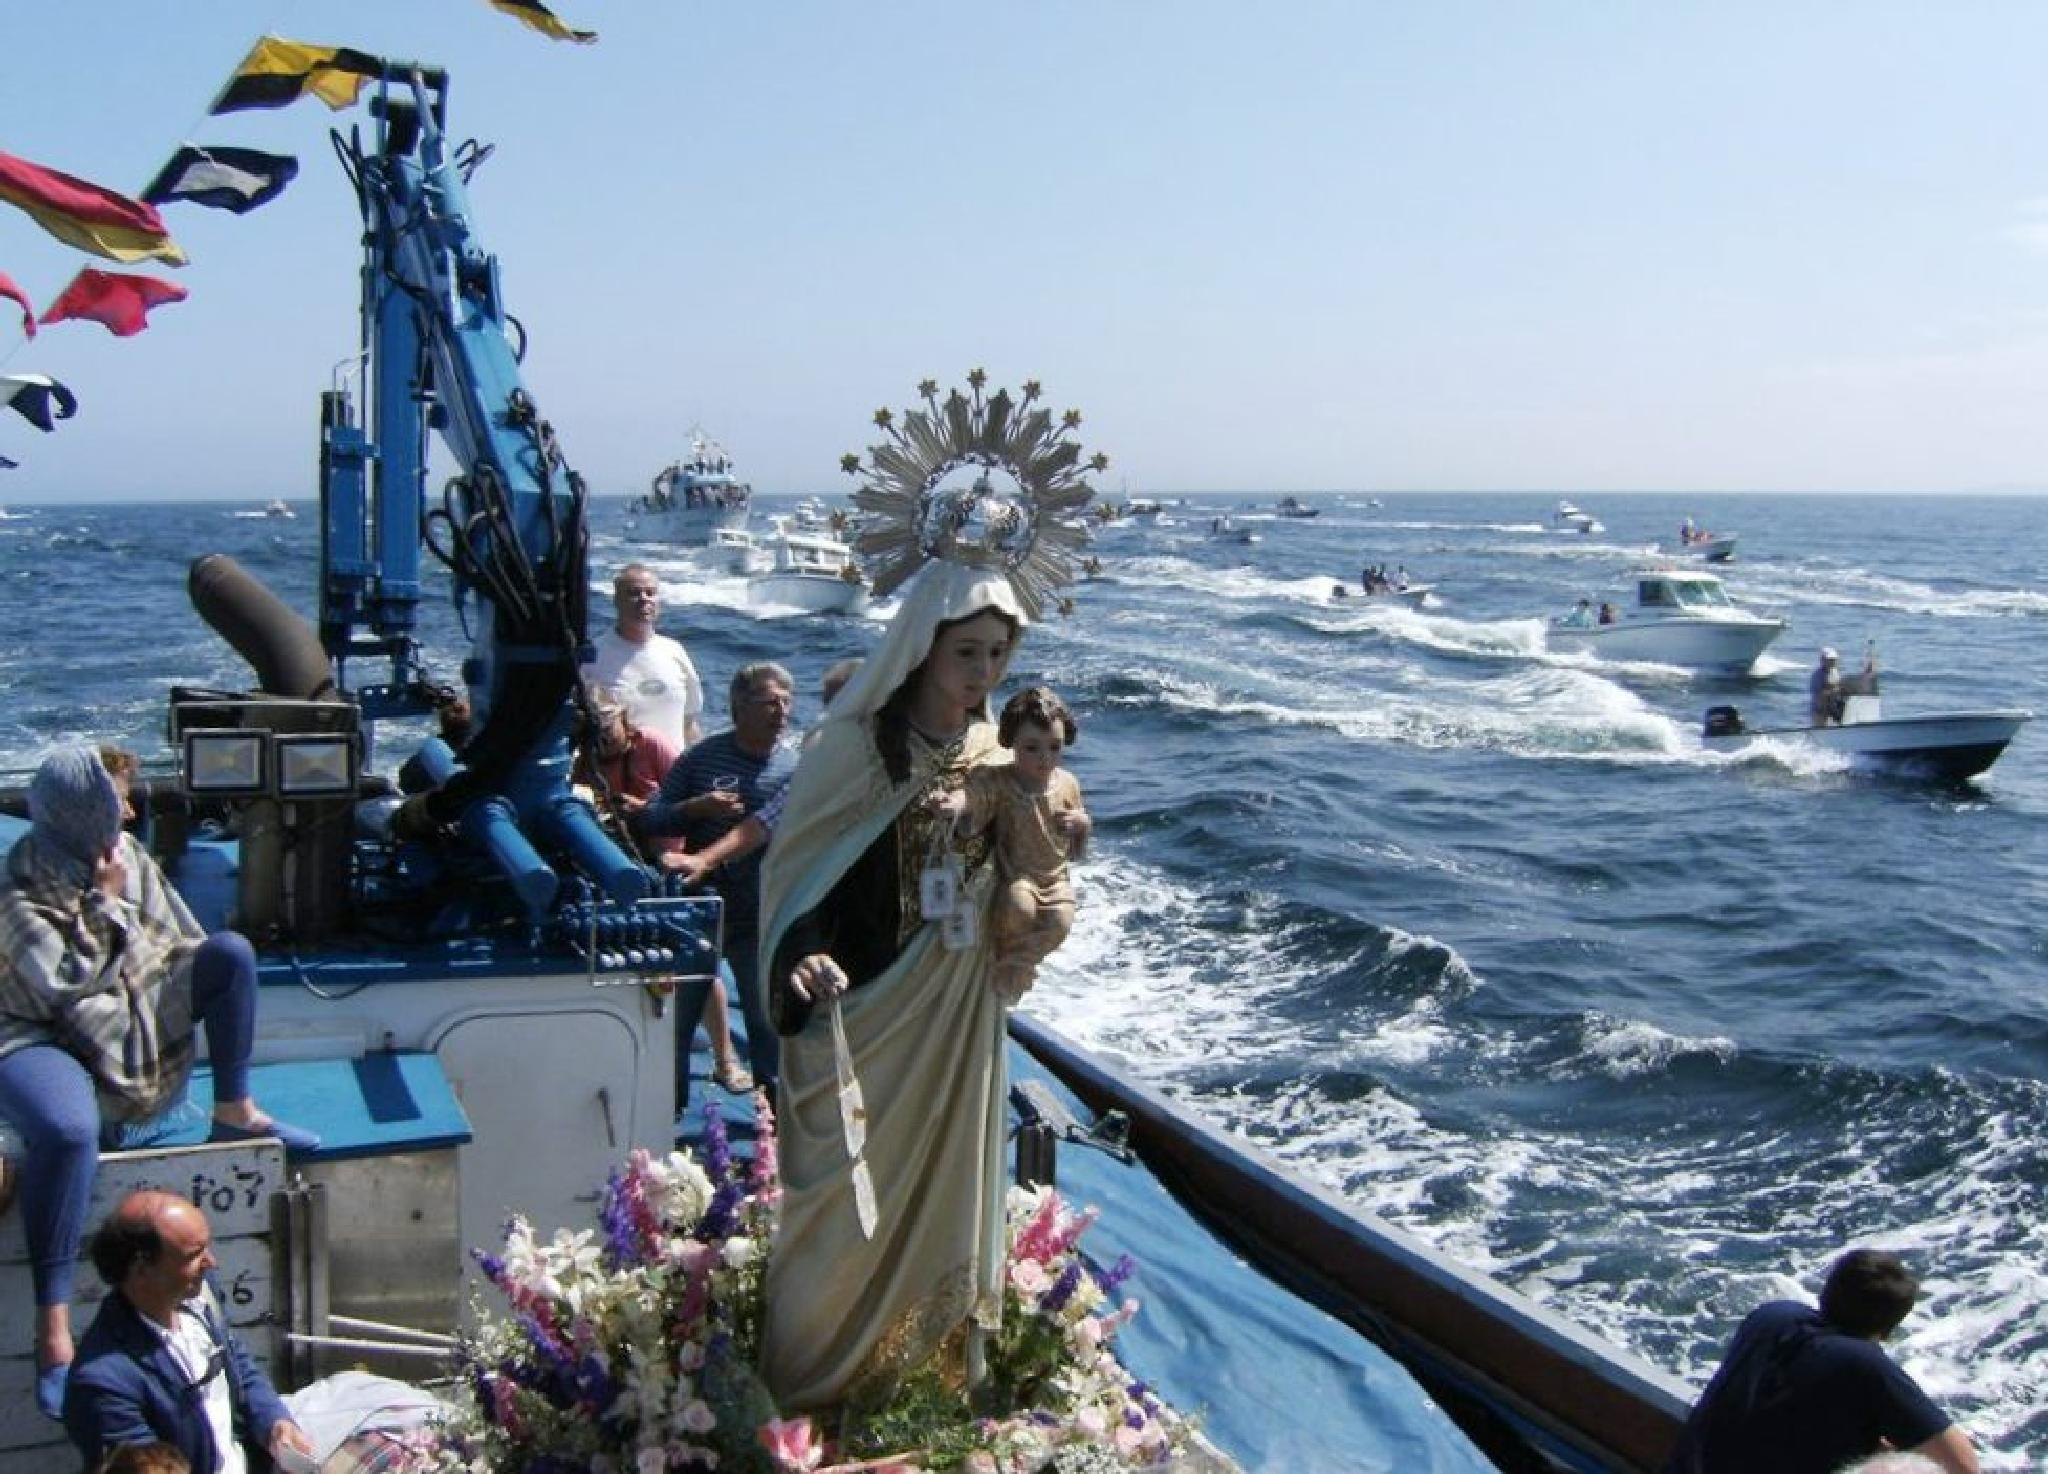 Maritime procession in my town. by Ana Docal